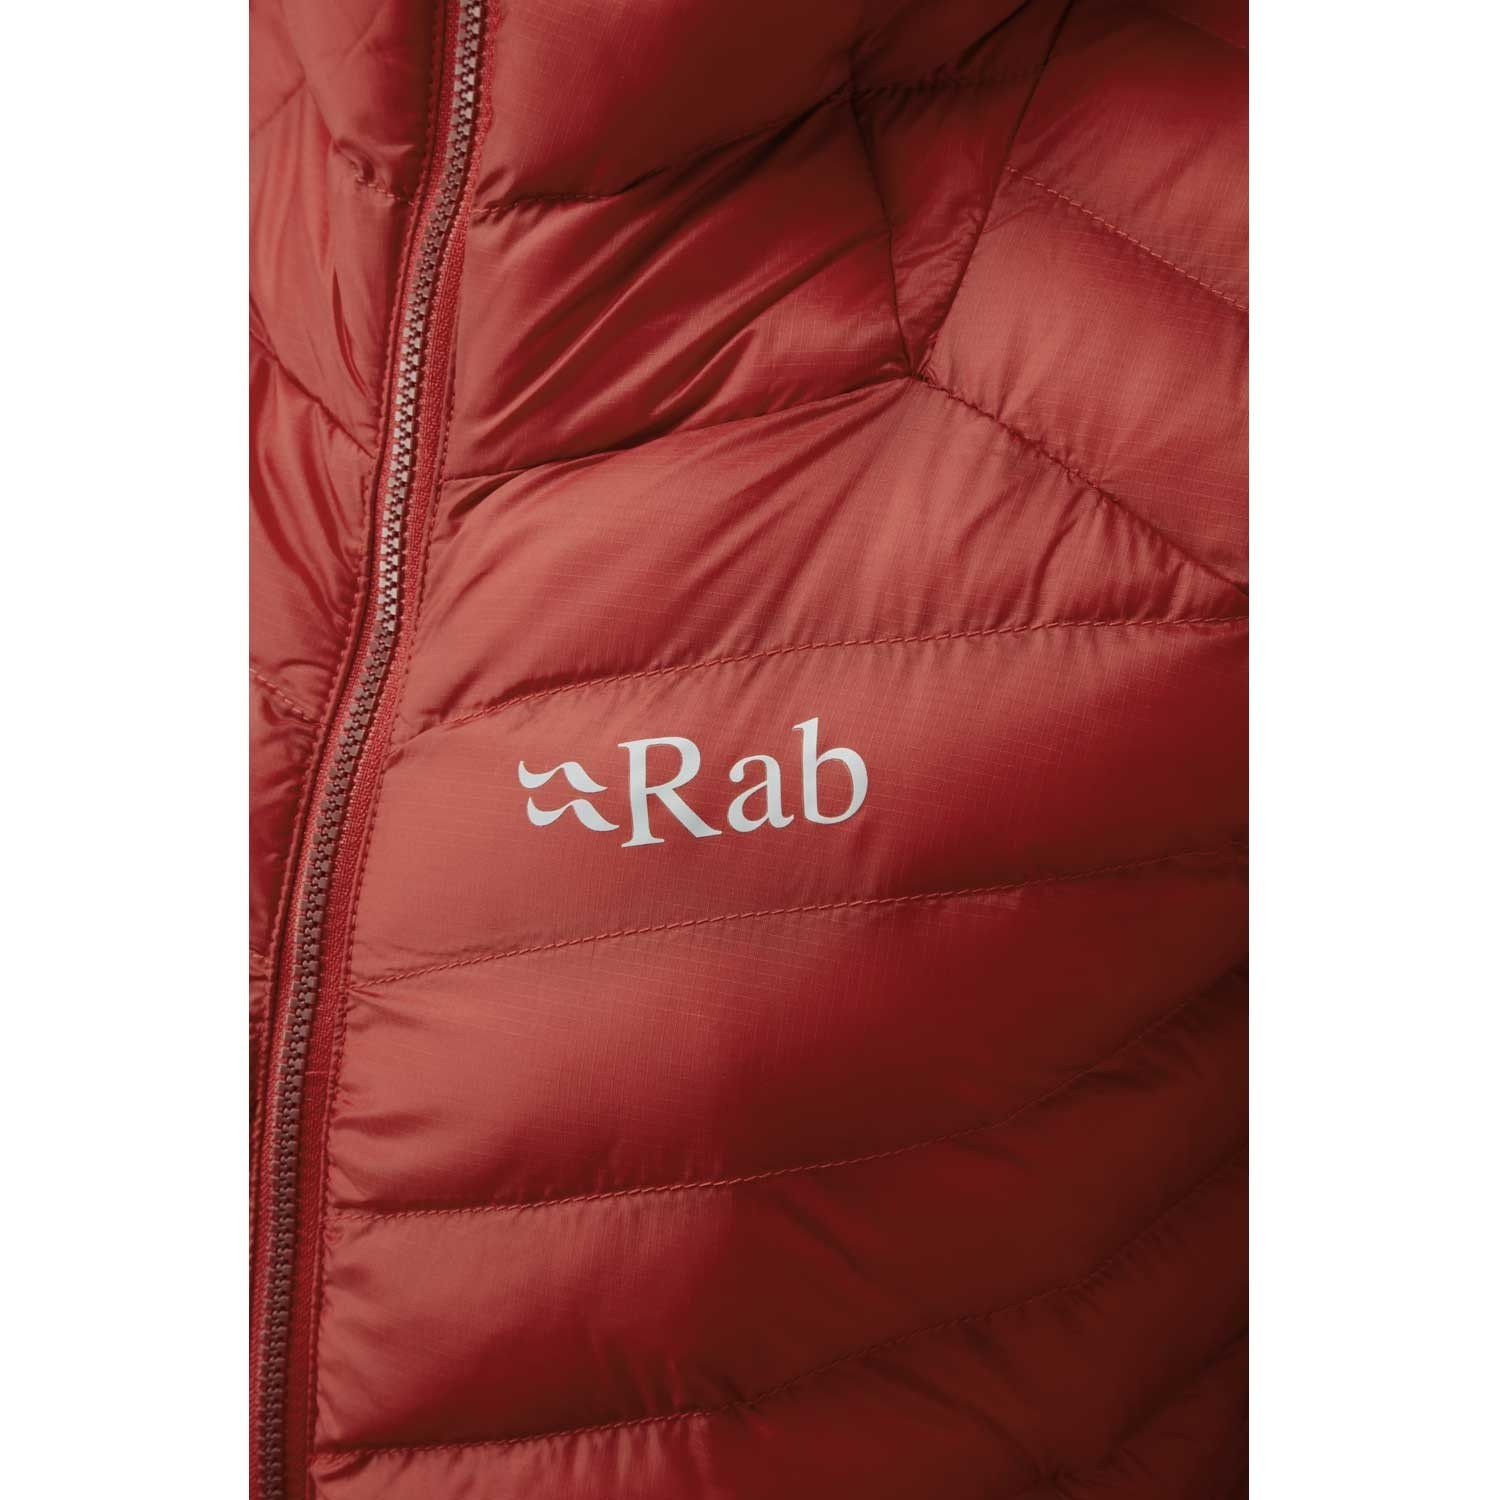 Rab Cirrus Alpine Insulated Jacket - Women's - Ascent Red